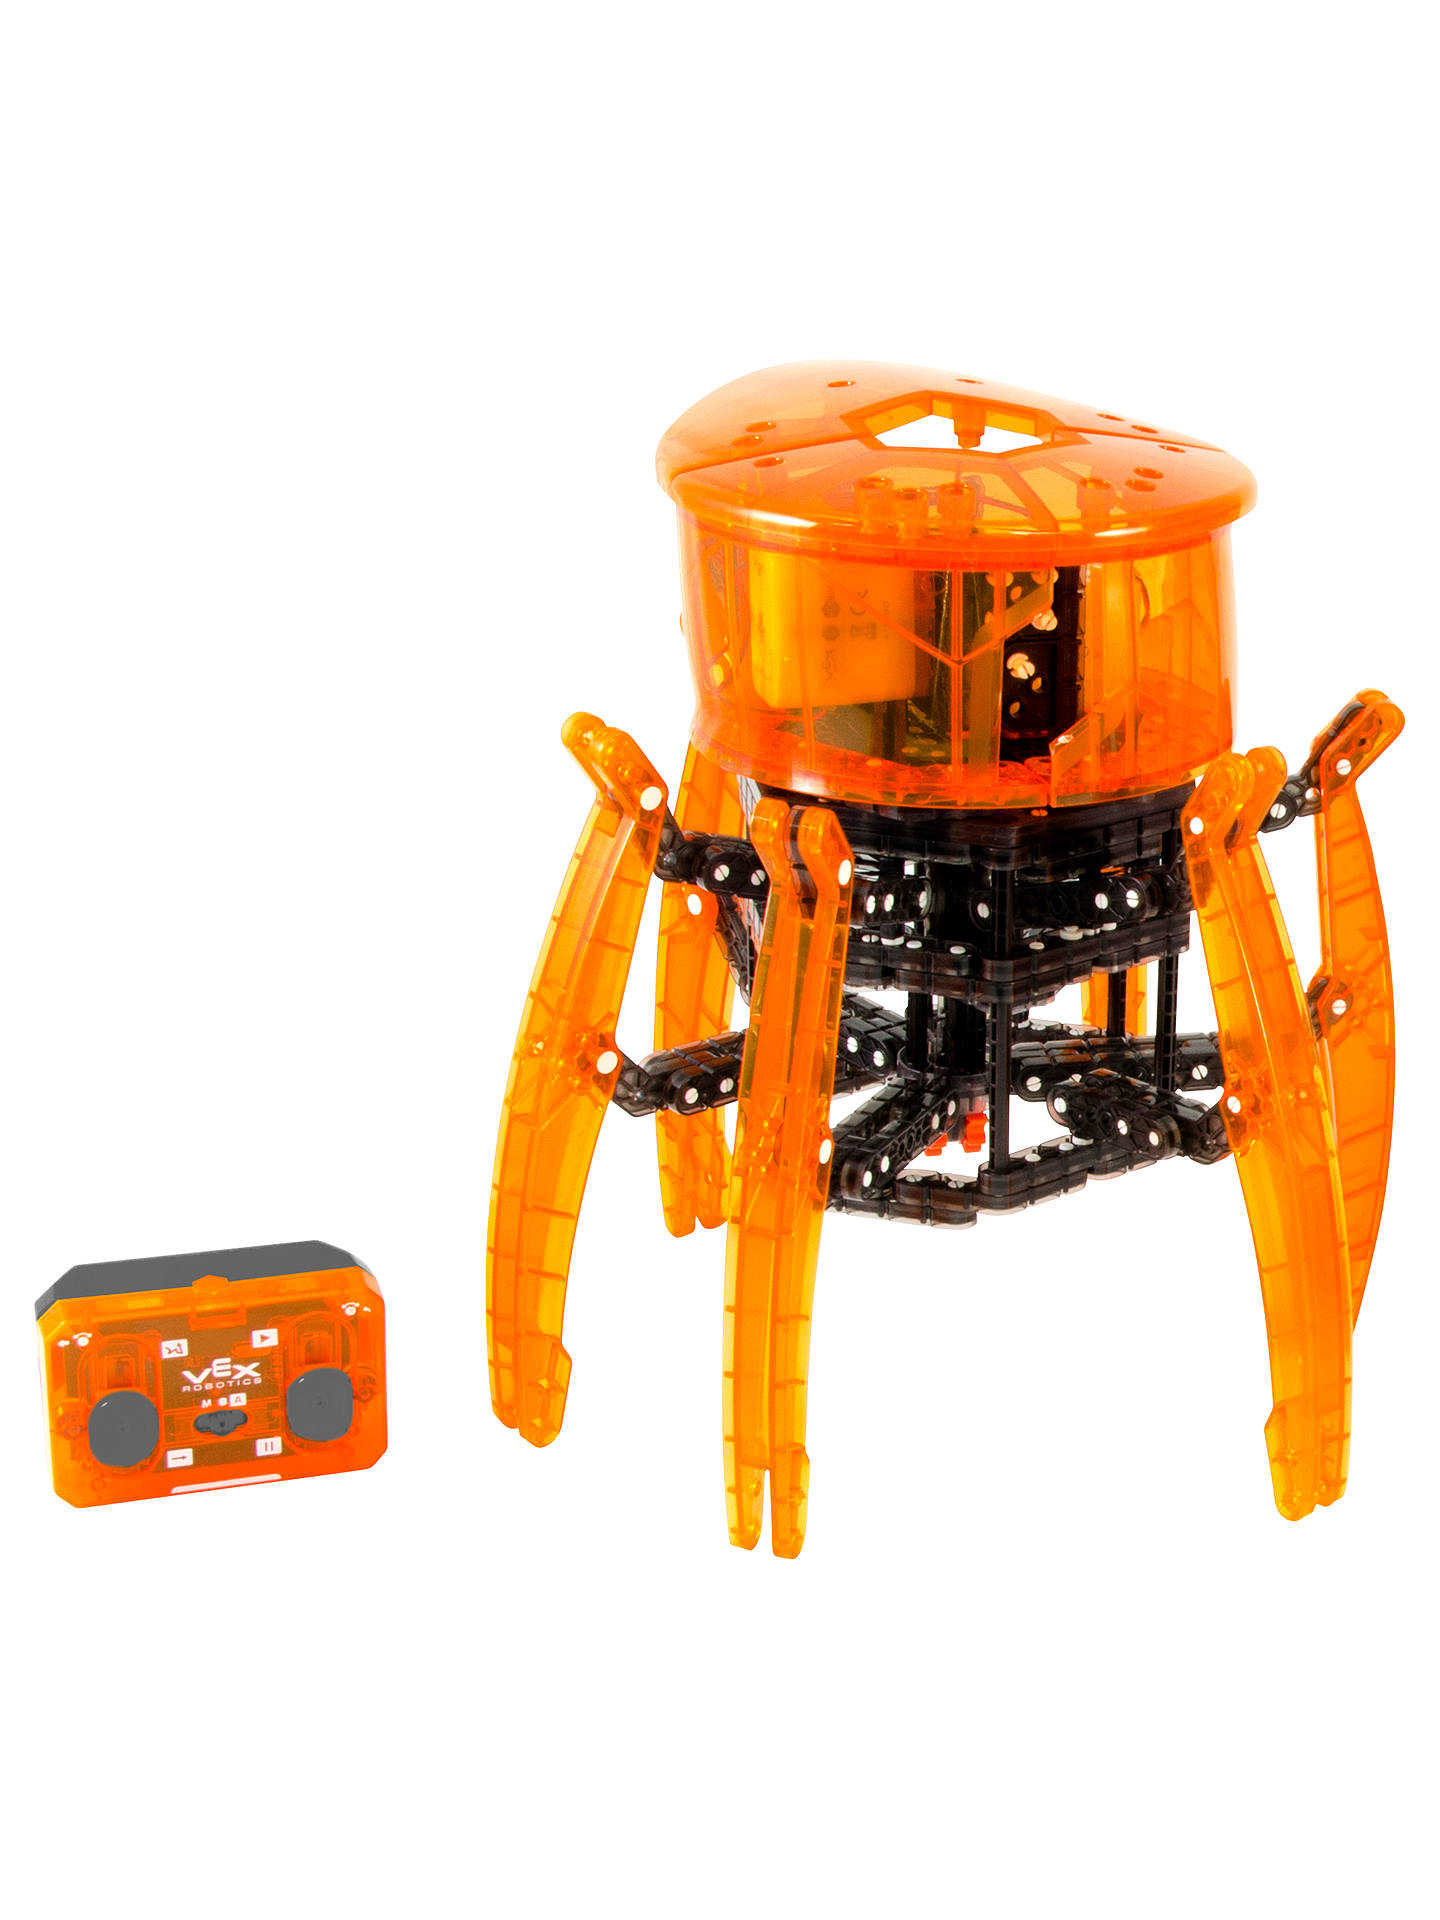 Hexbug Vex Robotics Spider Robot Construction Kit At John Lewis